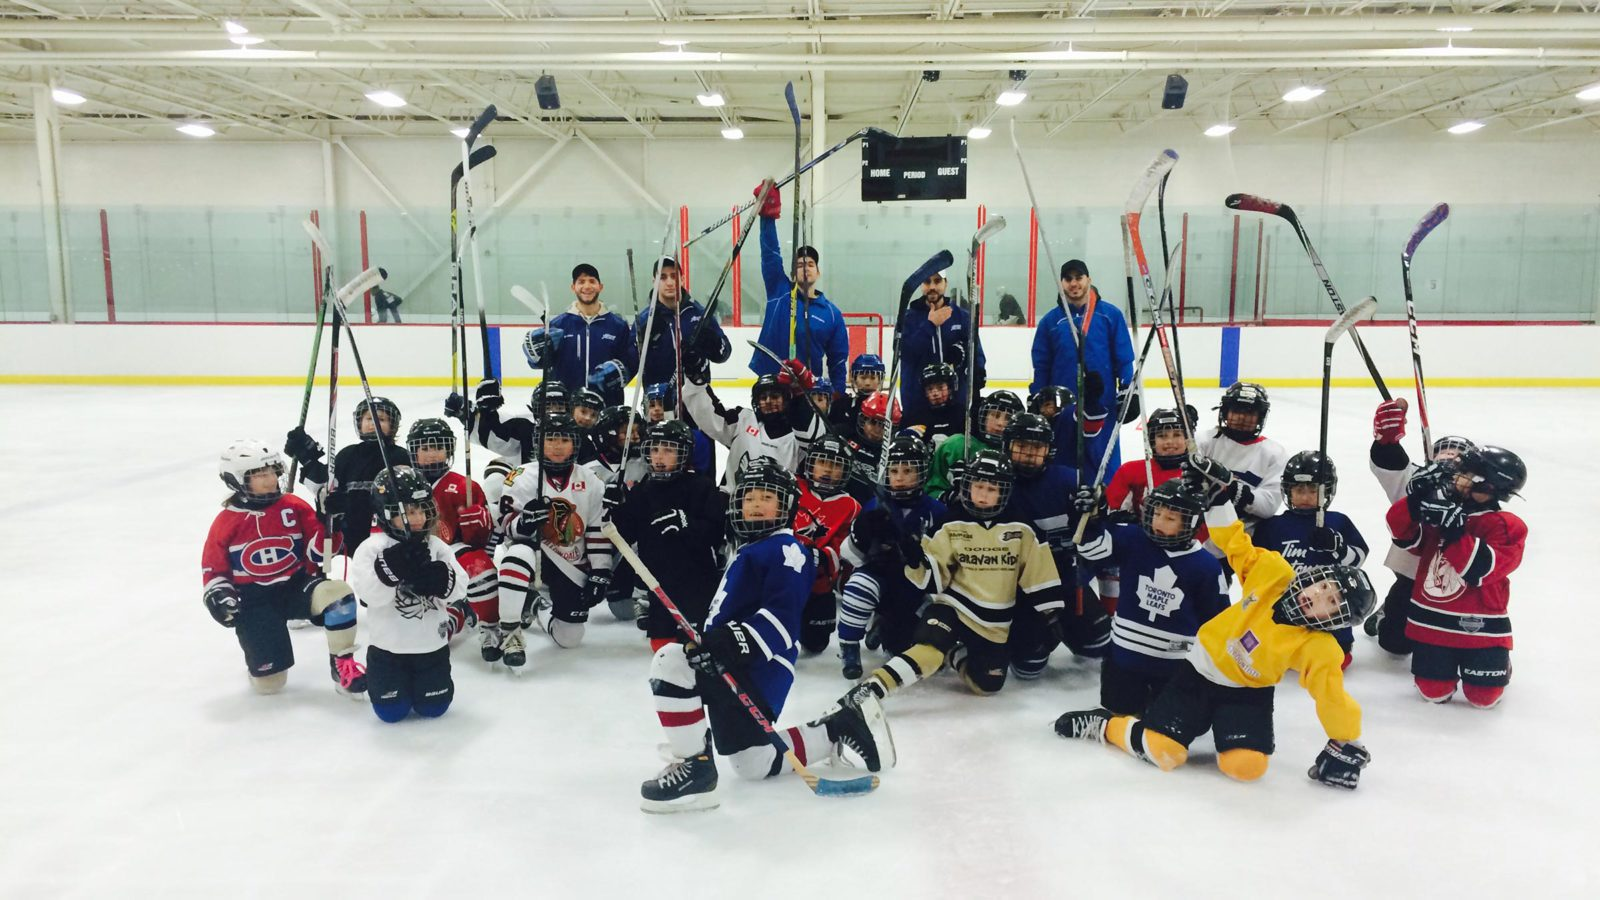 The definition of best youth hockey camp is not the same for everyone